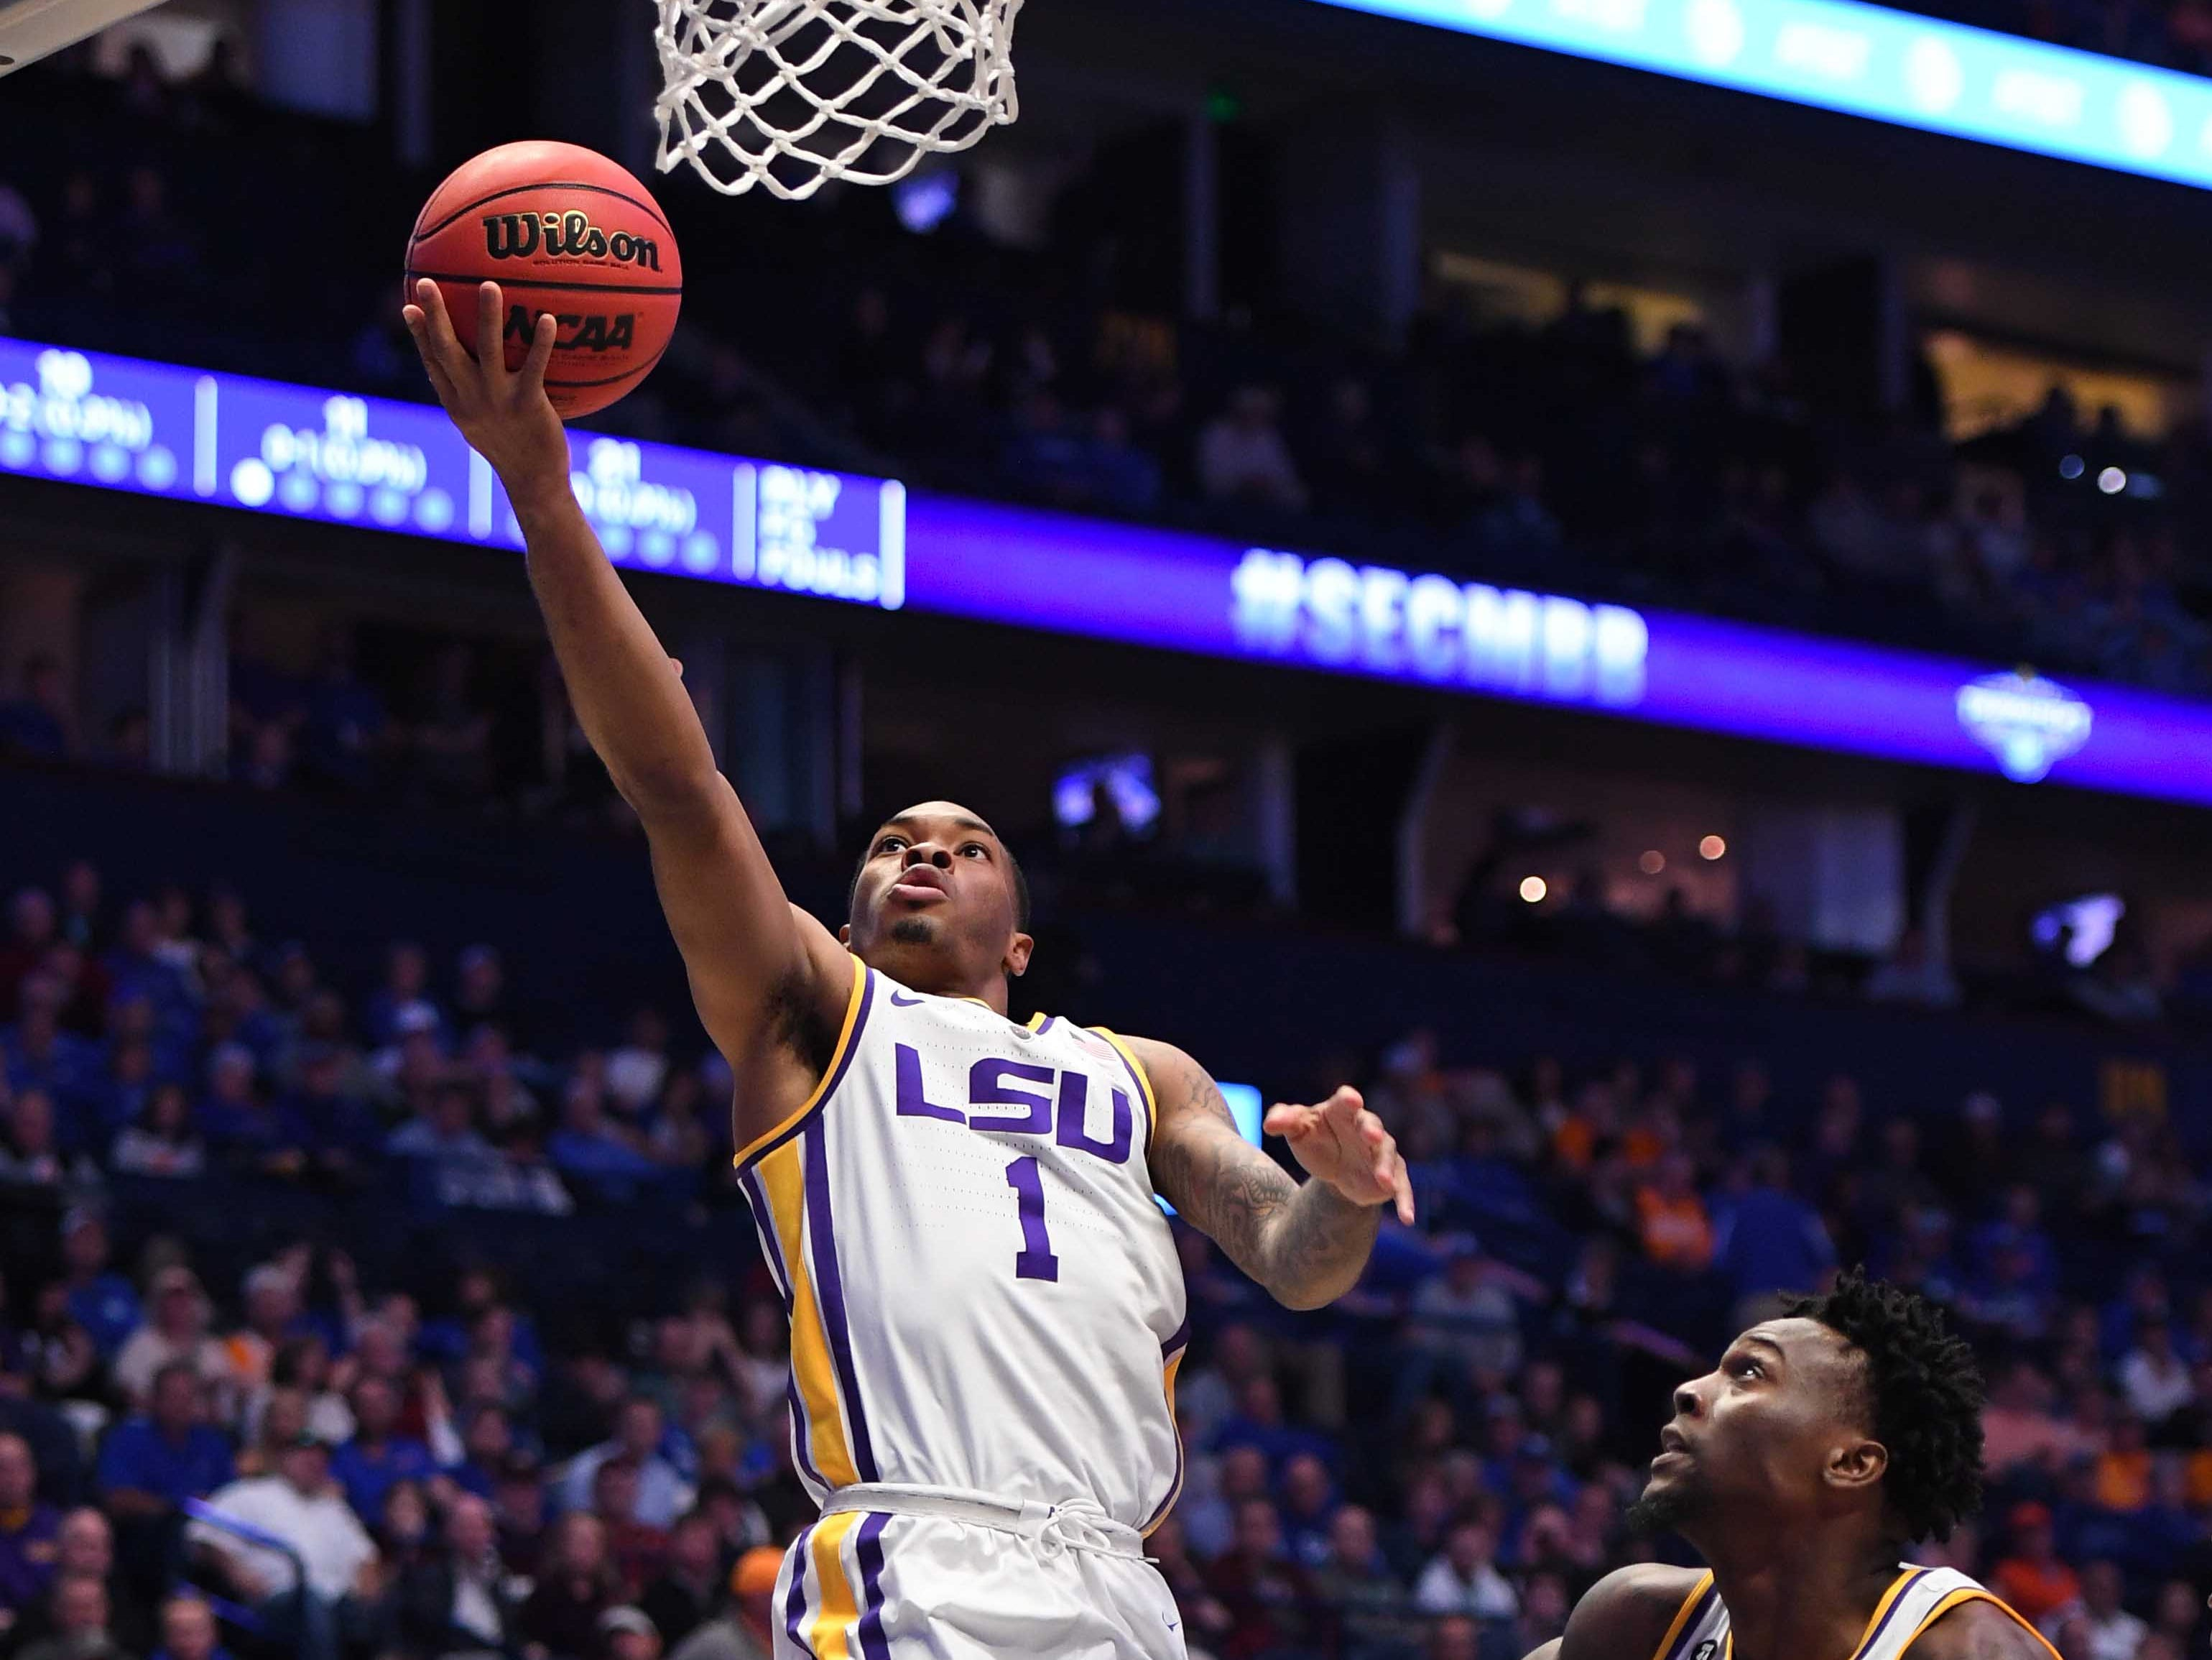 Mar 15, 2019; Nashville, TN, USA; LSU Tigers guard Javonte Smart (1) makes a layup against the Florida Gators during the first half of the SEC conference tournament at Bridgestone Arena. Mandatory Credit: Christopher Hanewinckel-USA TODAY Sports